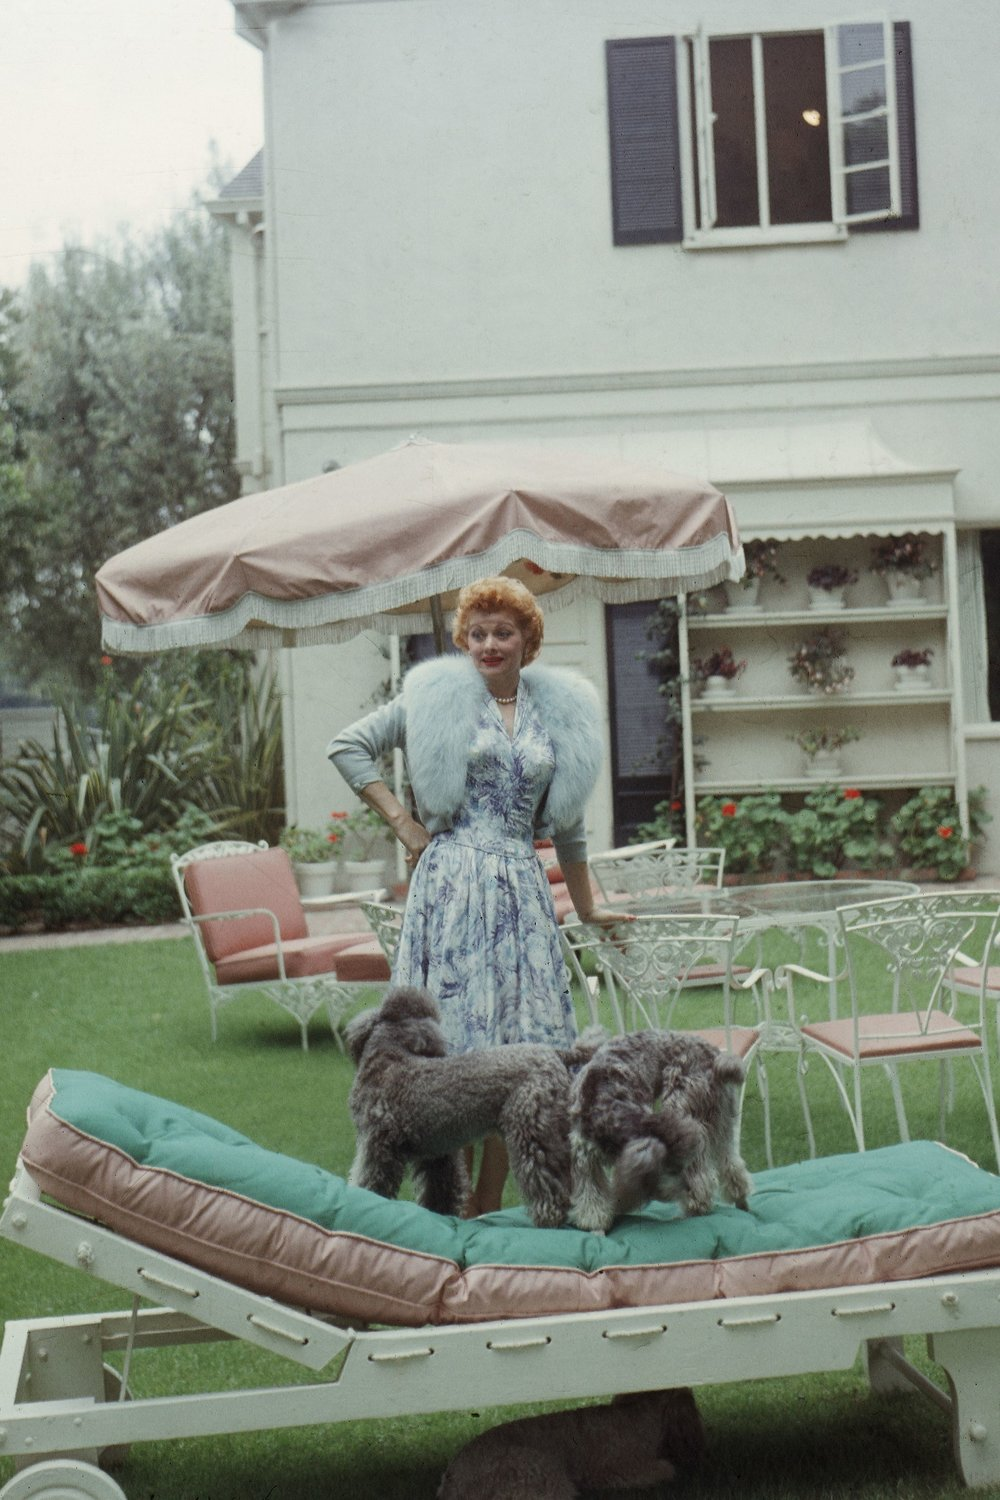 At home with her two poodles in 1957. (Where can I find that jacket?) Photo: Getty Images